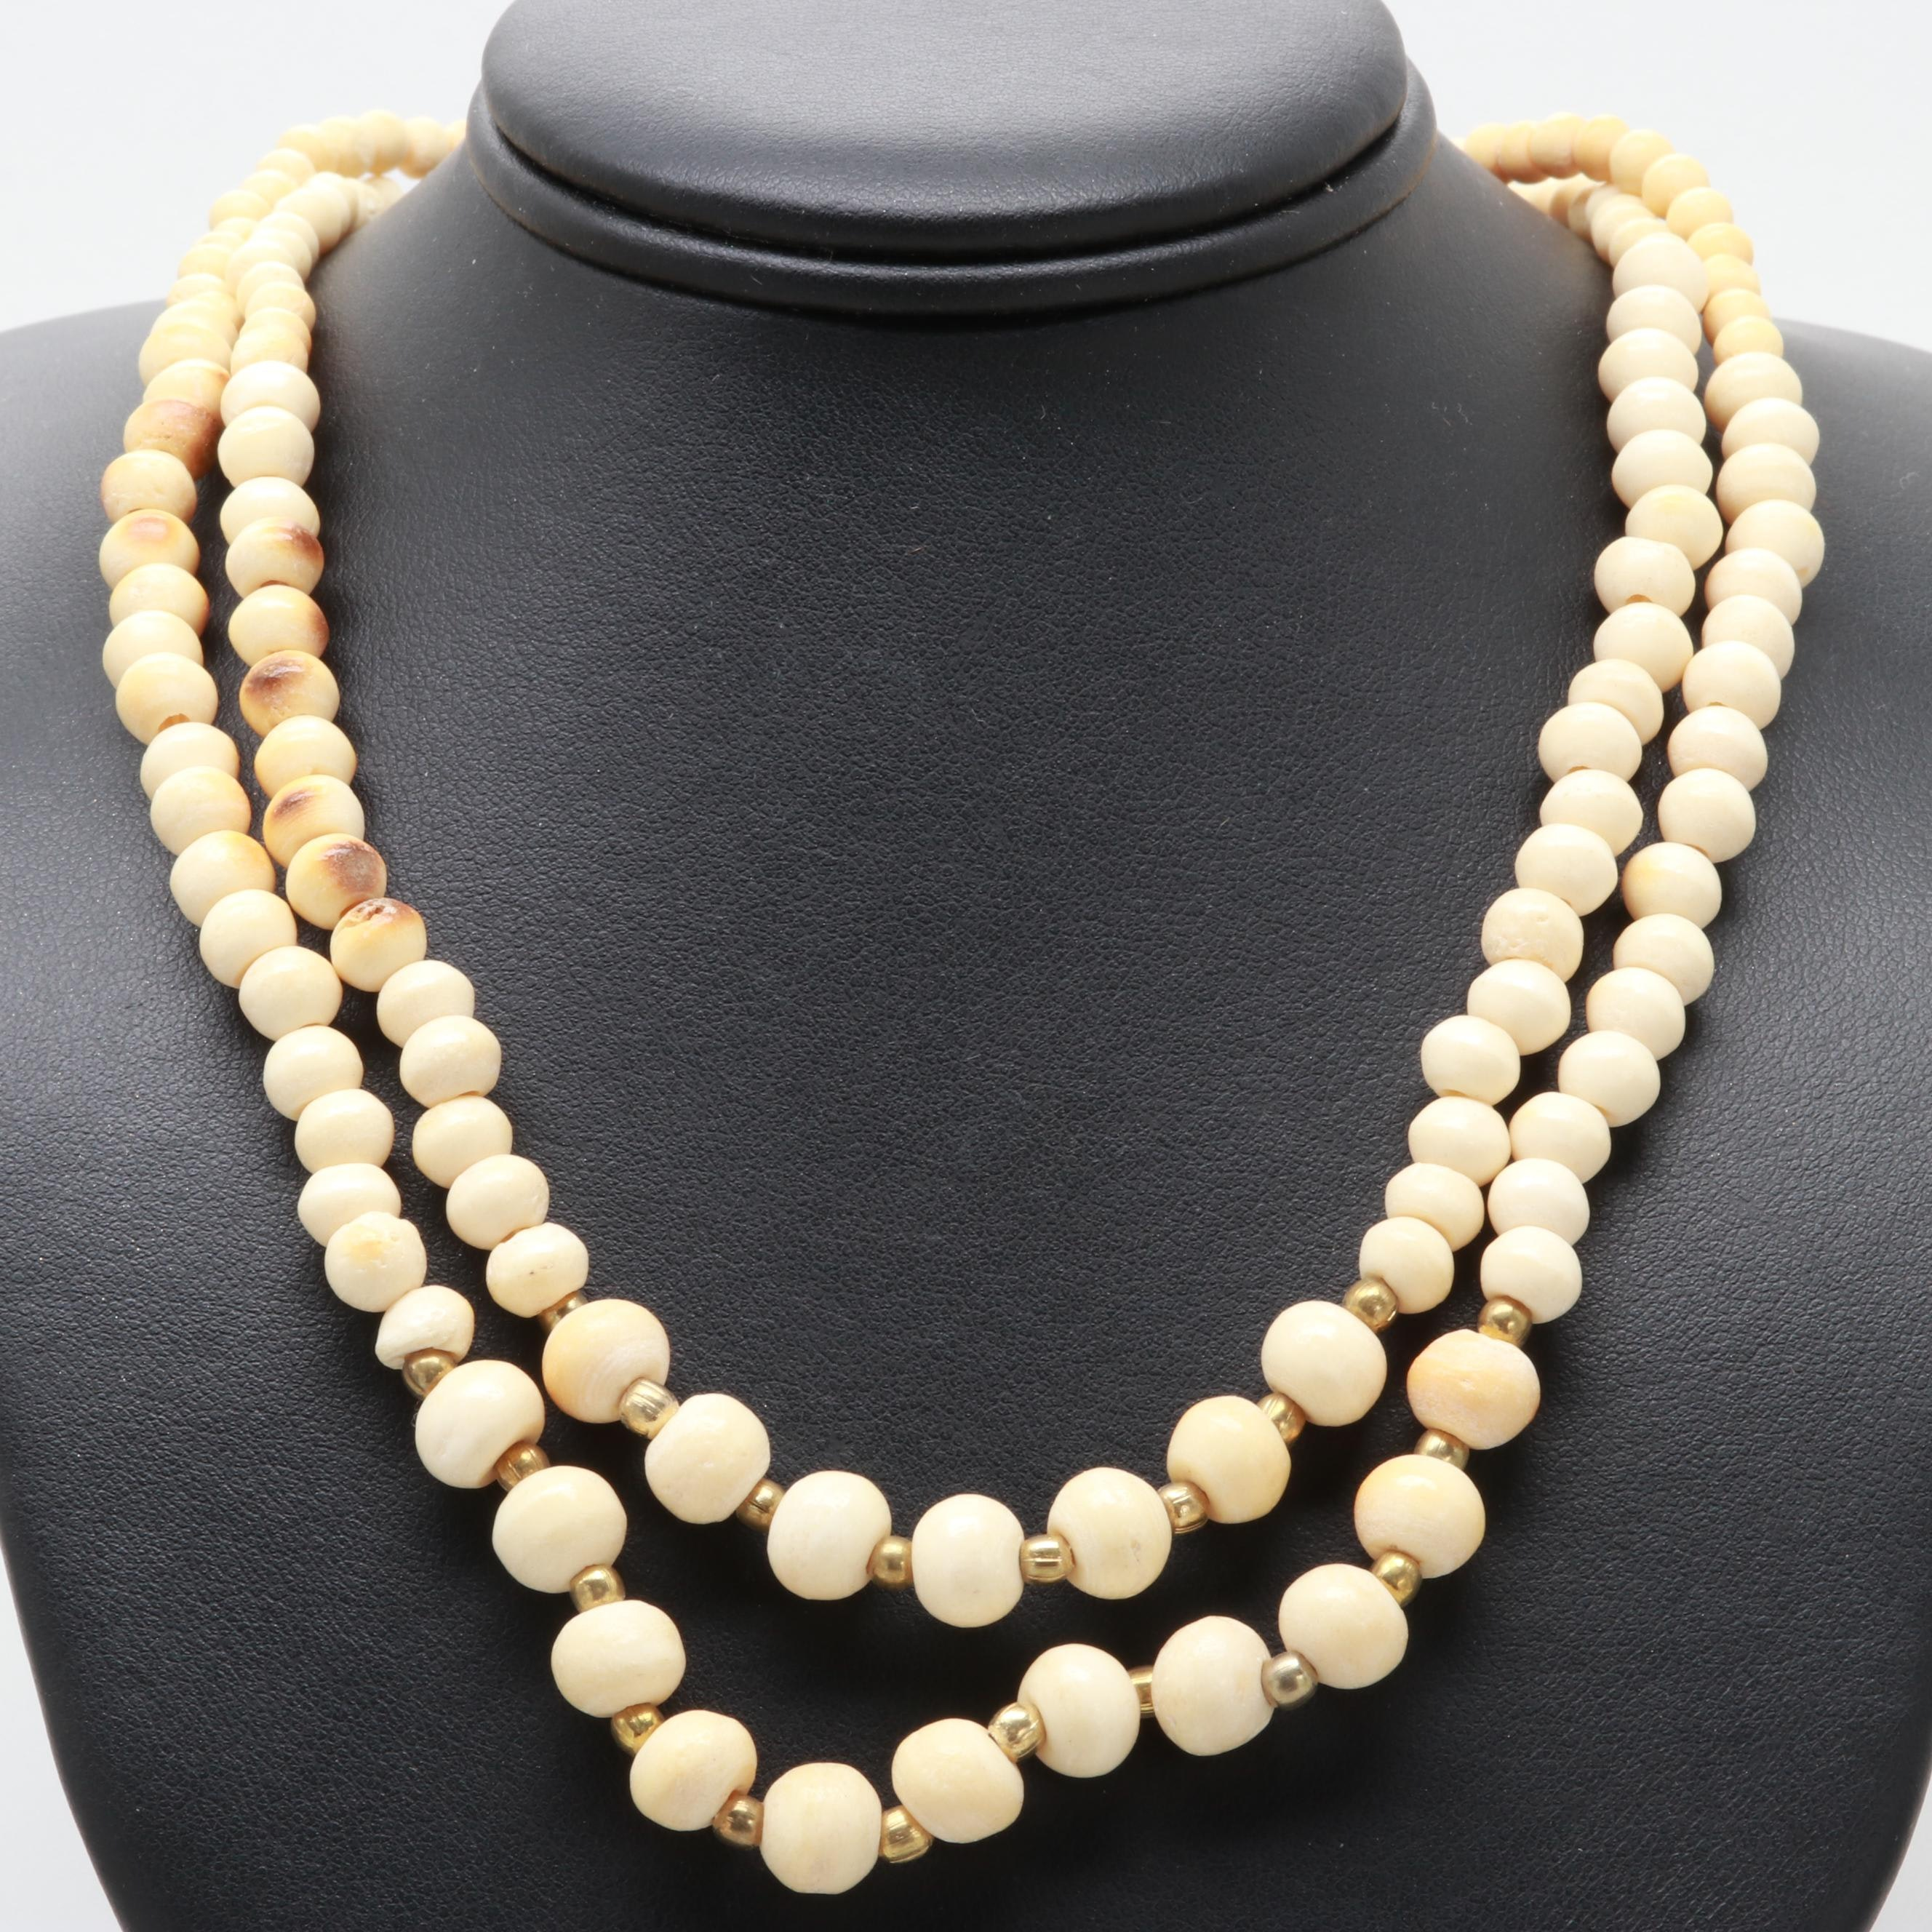 Beaded Bone Necklace with Gold Tone Spacer Beads Made in India